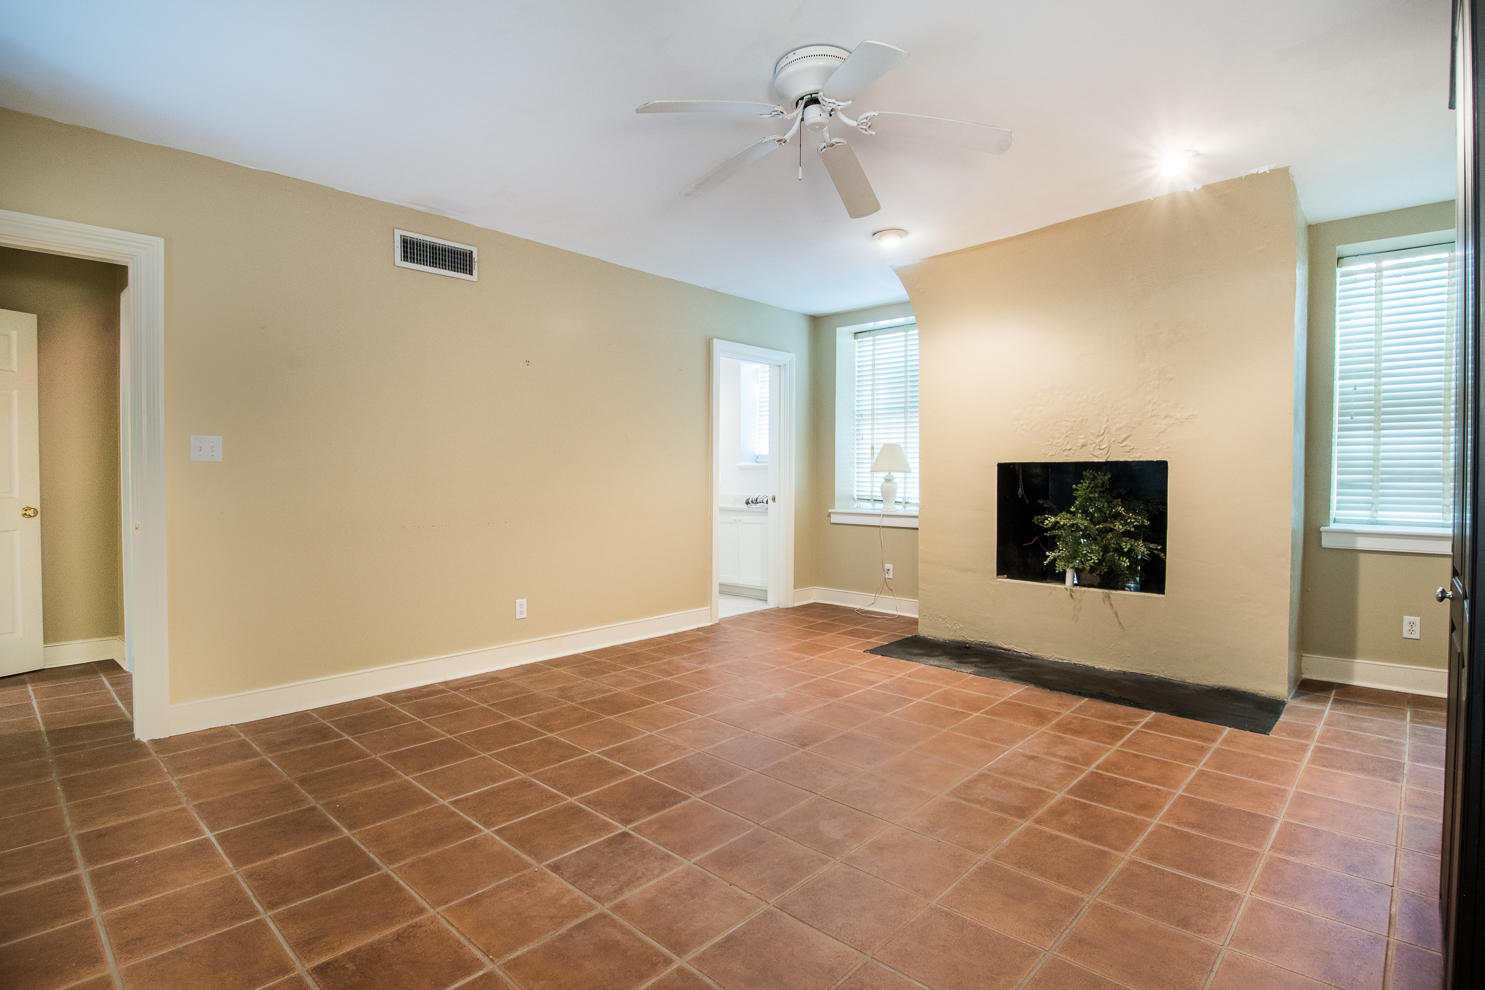 South of Broad Homes For Sale - 1 Prices, Charleston, SC - 55